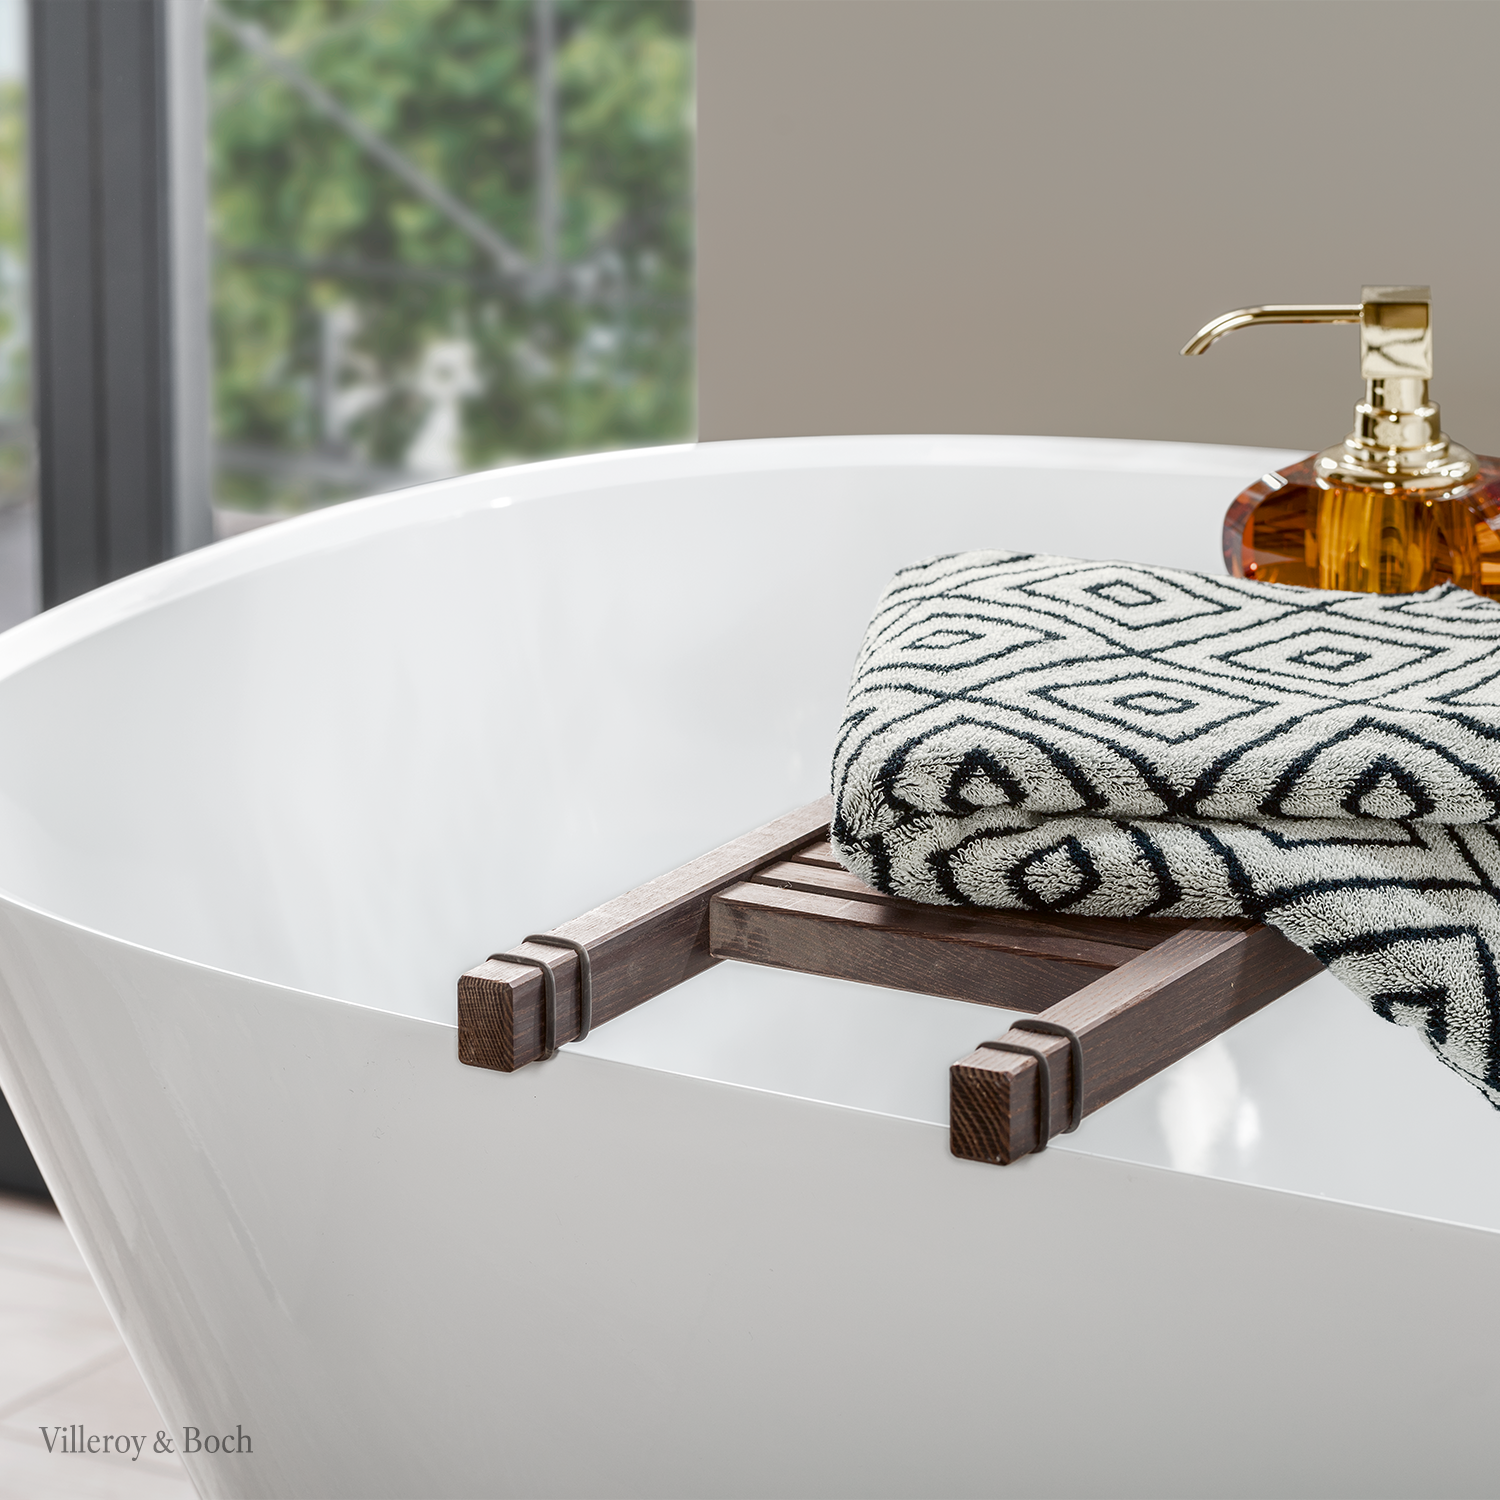 Stay At Home And Enjoy Your Personal Wellness Area In 2020 Badewanne Handtucher